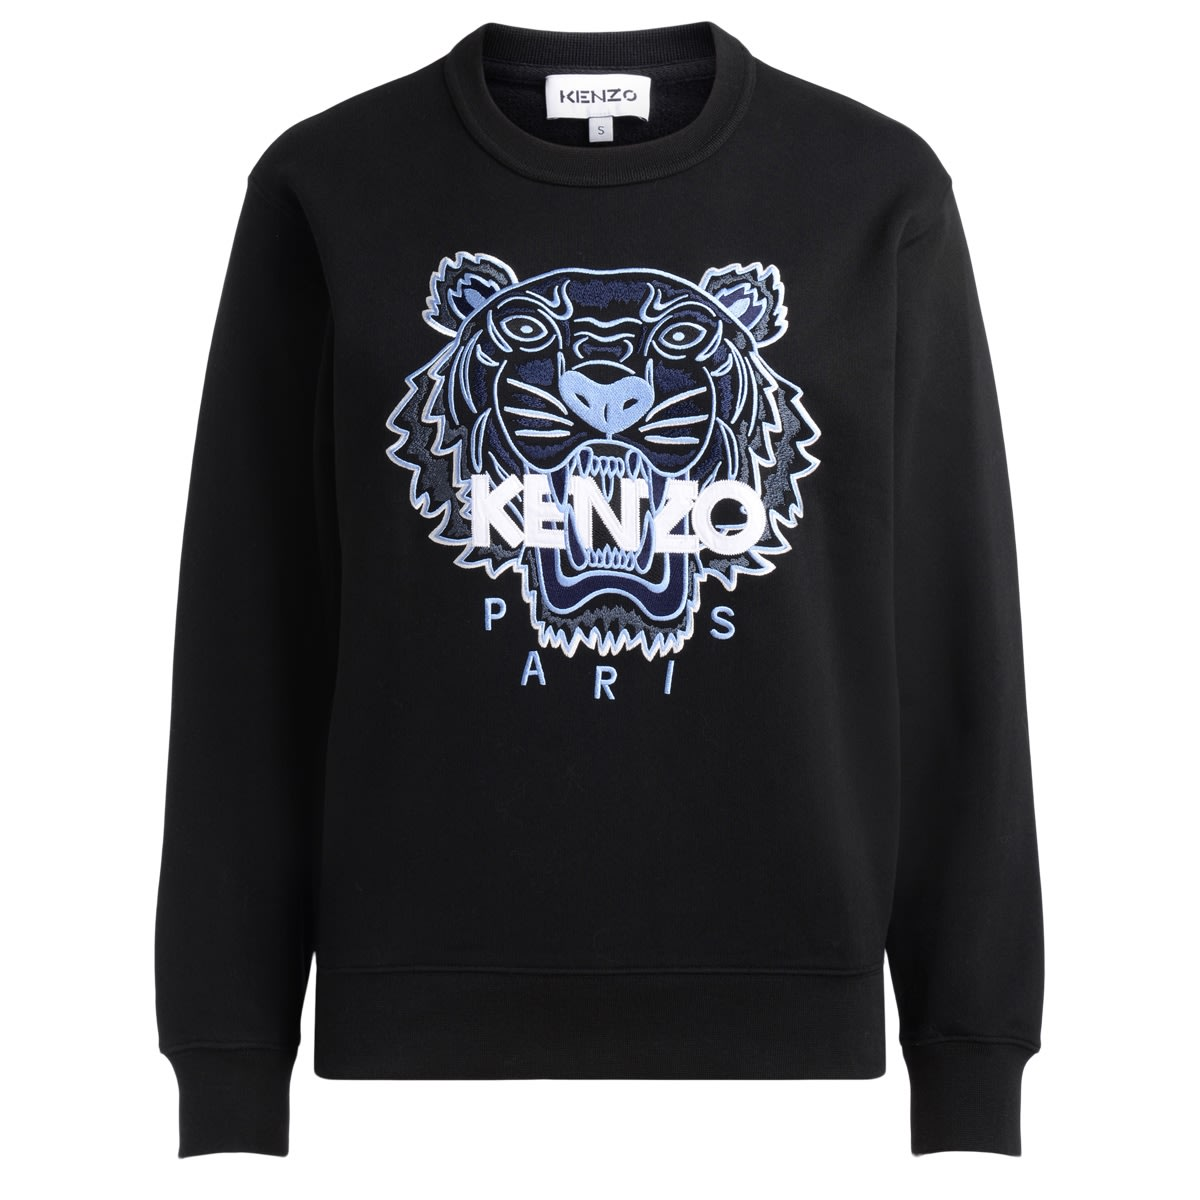 Black Womens Kenzo Tiger Sweatshirt With Light Blue Tiger